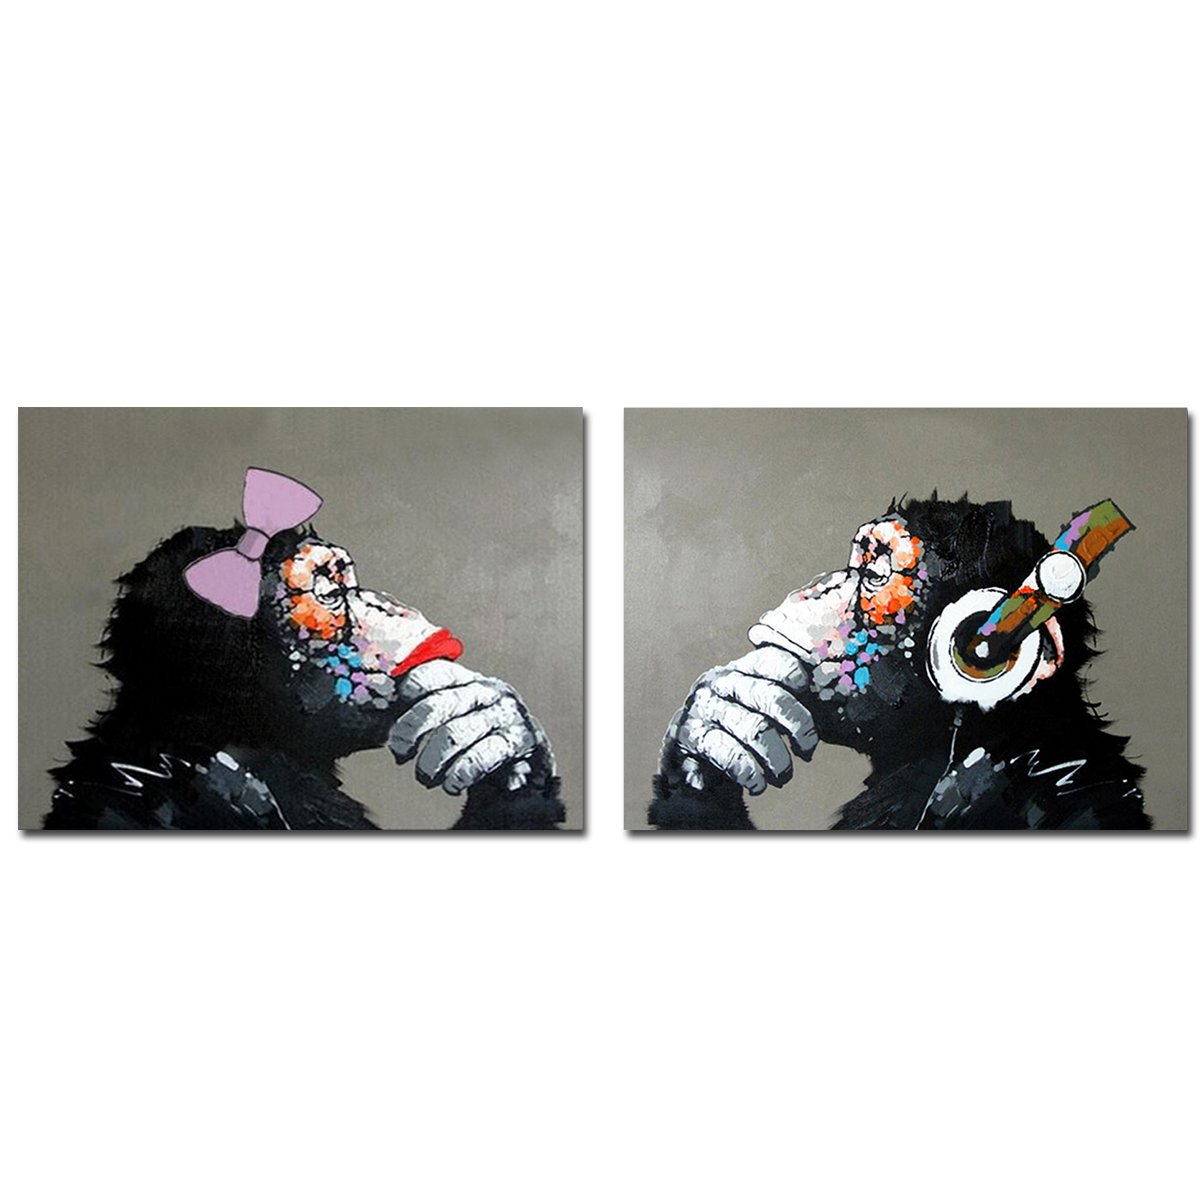 Muzagroo Art Gorilla with Headphone Oil Painting Hand Painted Art on Canvas Pictures for Living Room Large Size Paintings Ready to Hang L by Muzagroo Art